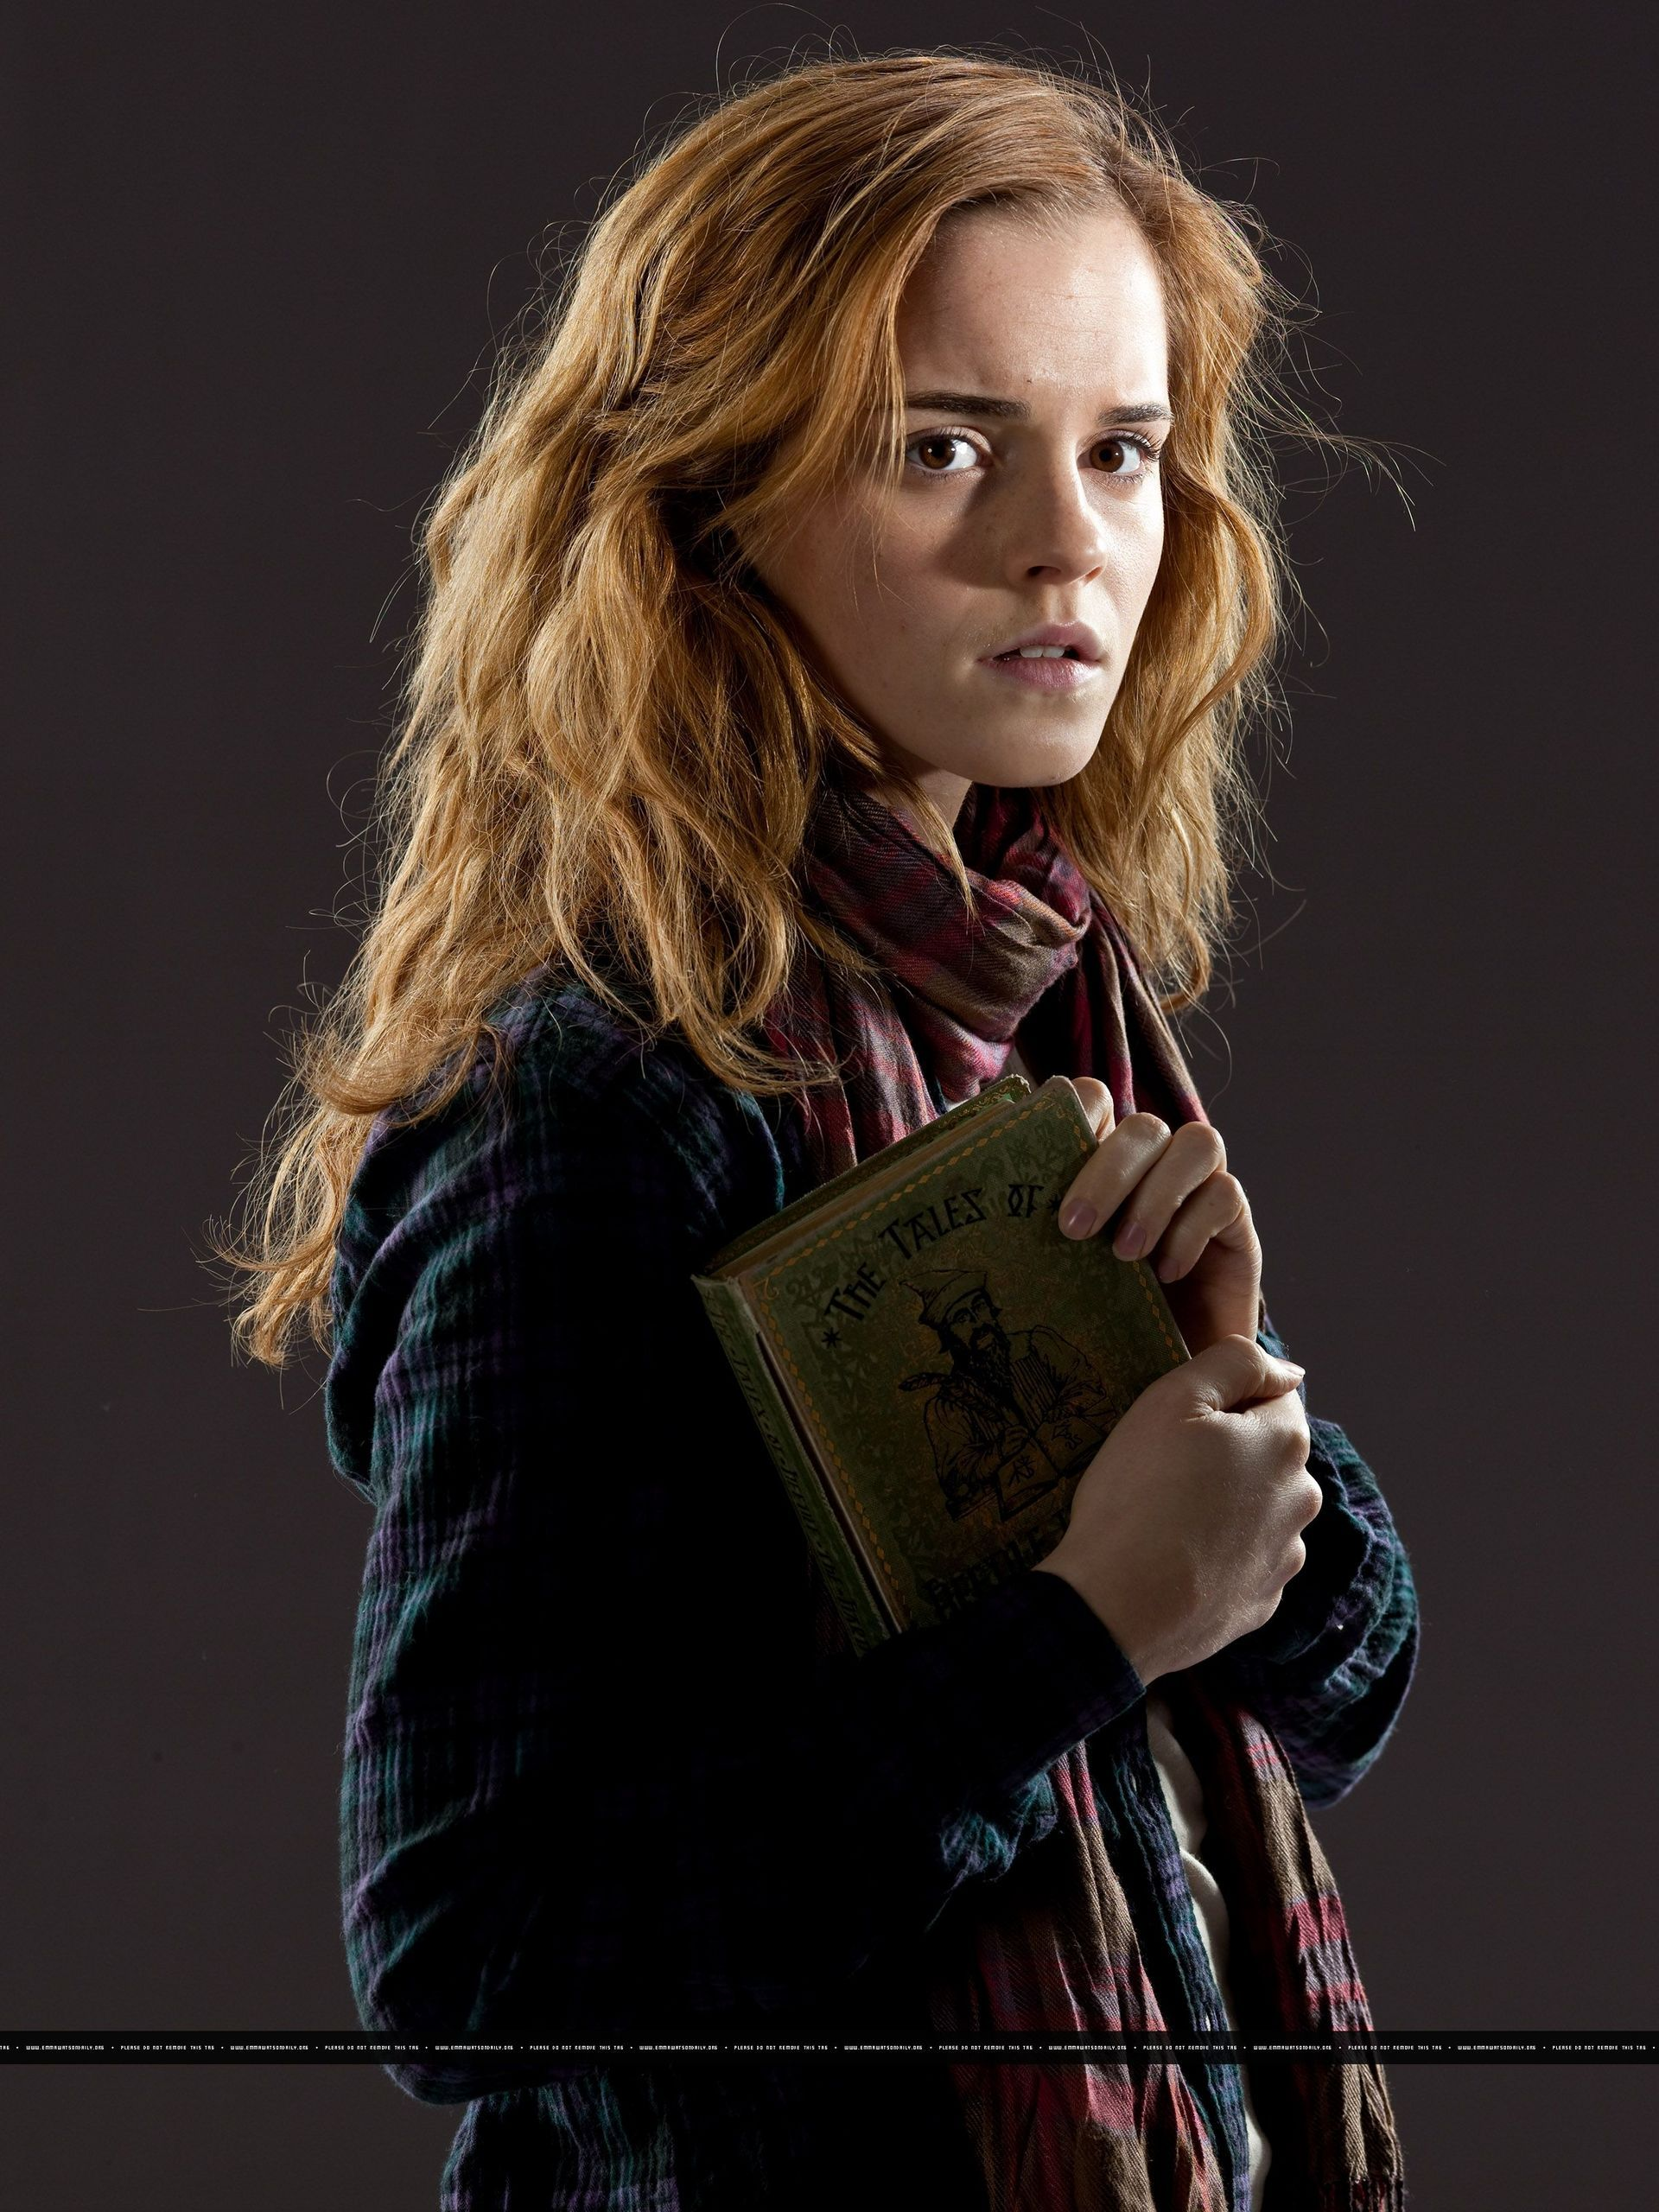 Hermione Granger Photo New Promotional Pictures Of Emma Watson For Harry Potter And The Deathly Hallows Part 1 Emma Watson Harry Potter Hermione Granger Hair Hermione